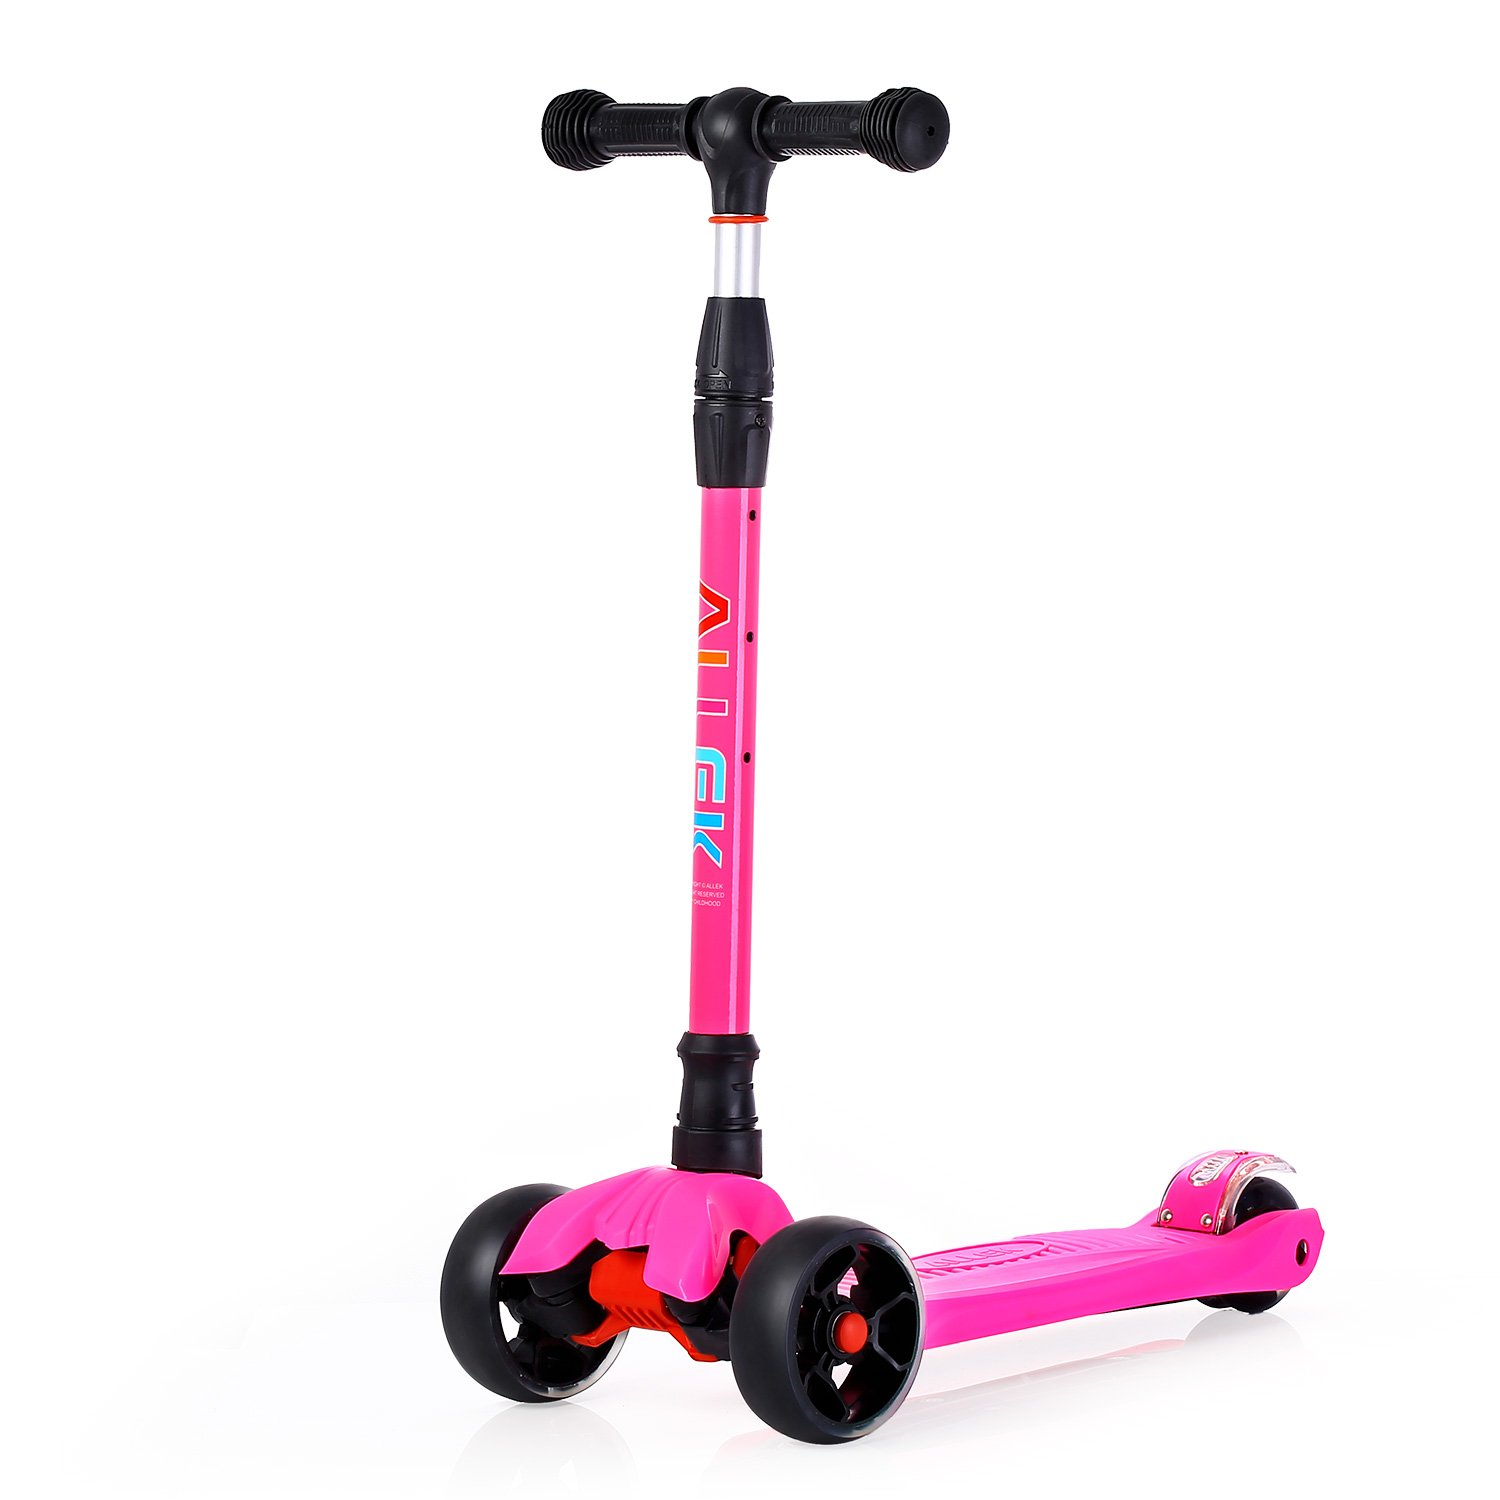 Allek Kick Scooter, 3-Wheeled Lean 'N Glide Scooter with PU Light-Up Wheels and 4 Adjustable Heights for Children from 3-14yrs (Pink)